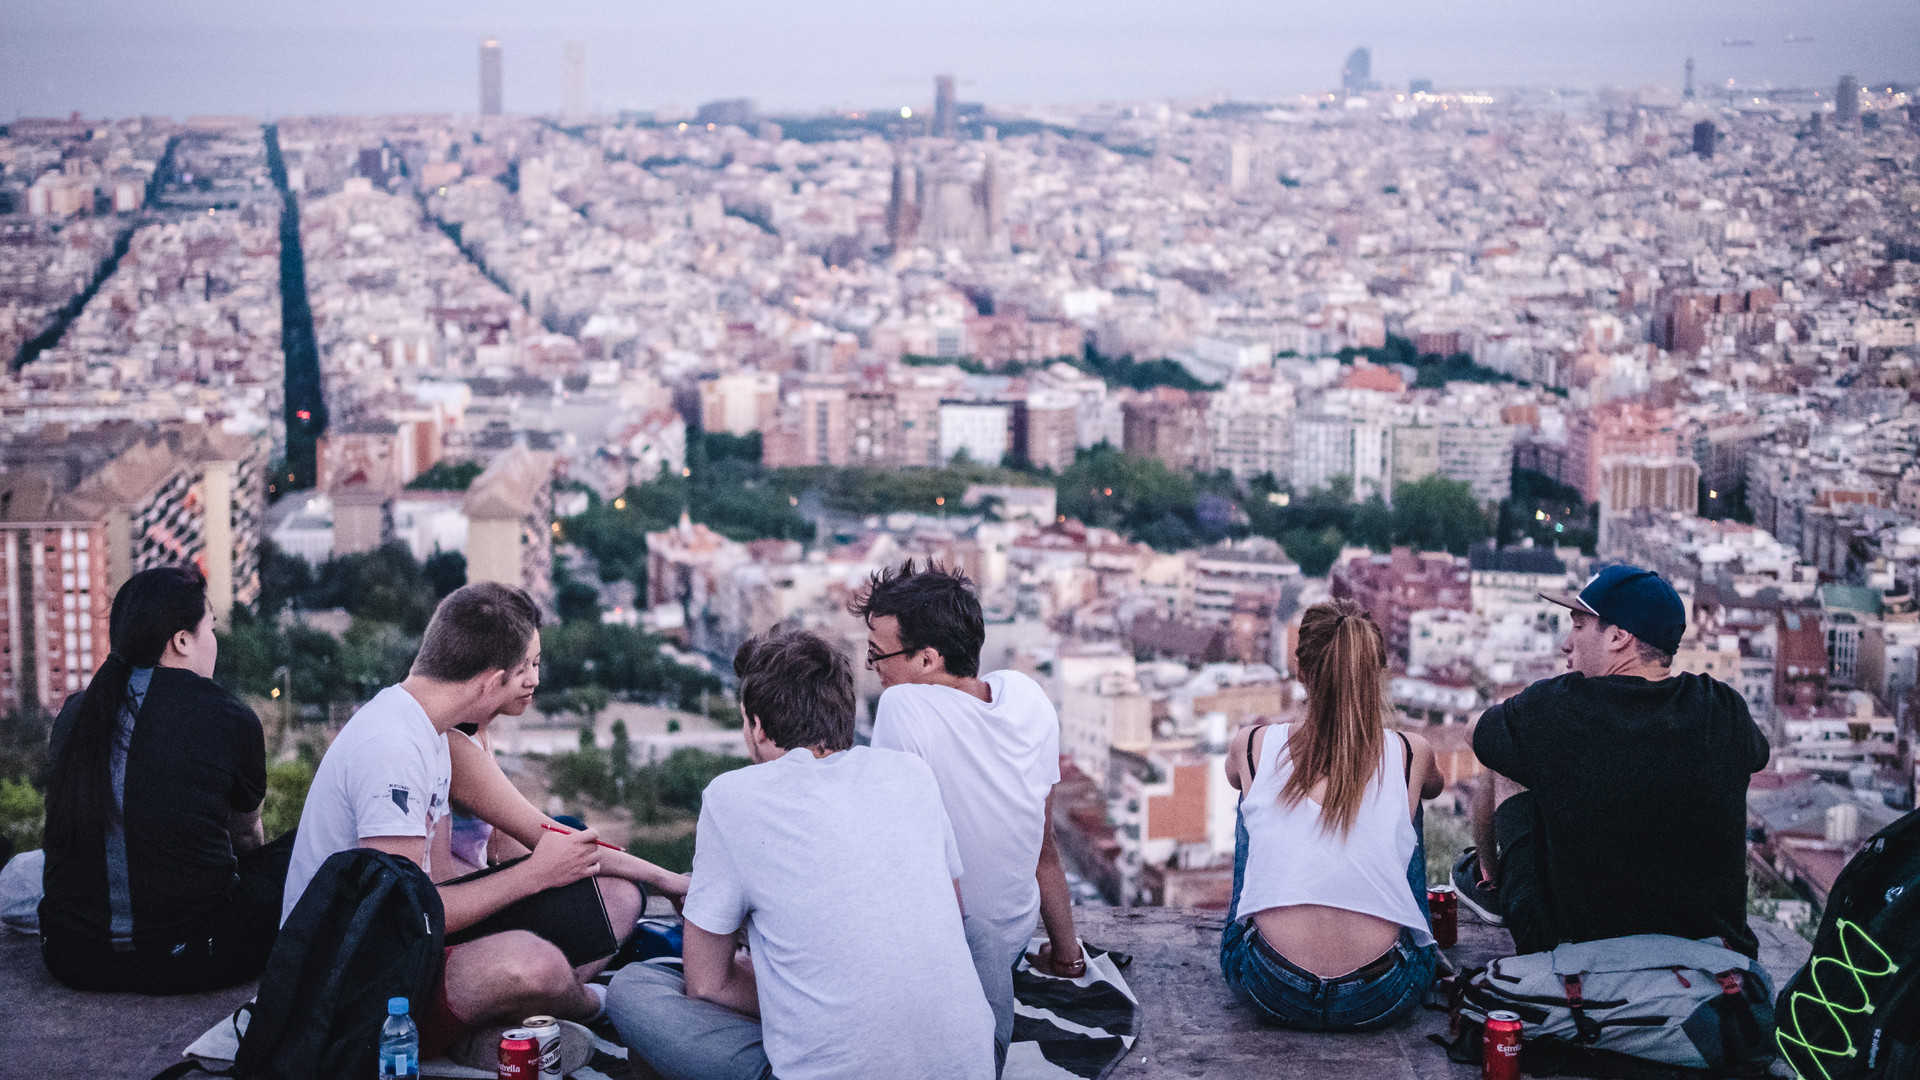 Young people enjoying the view over Barcelona at dusk with pink sky